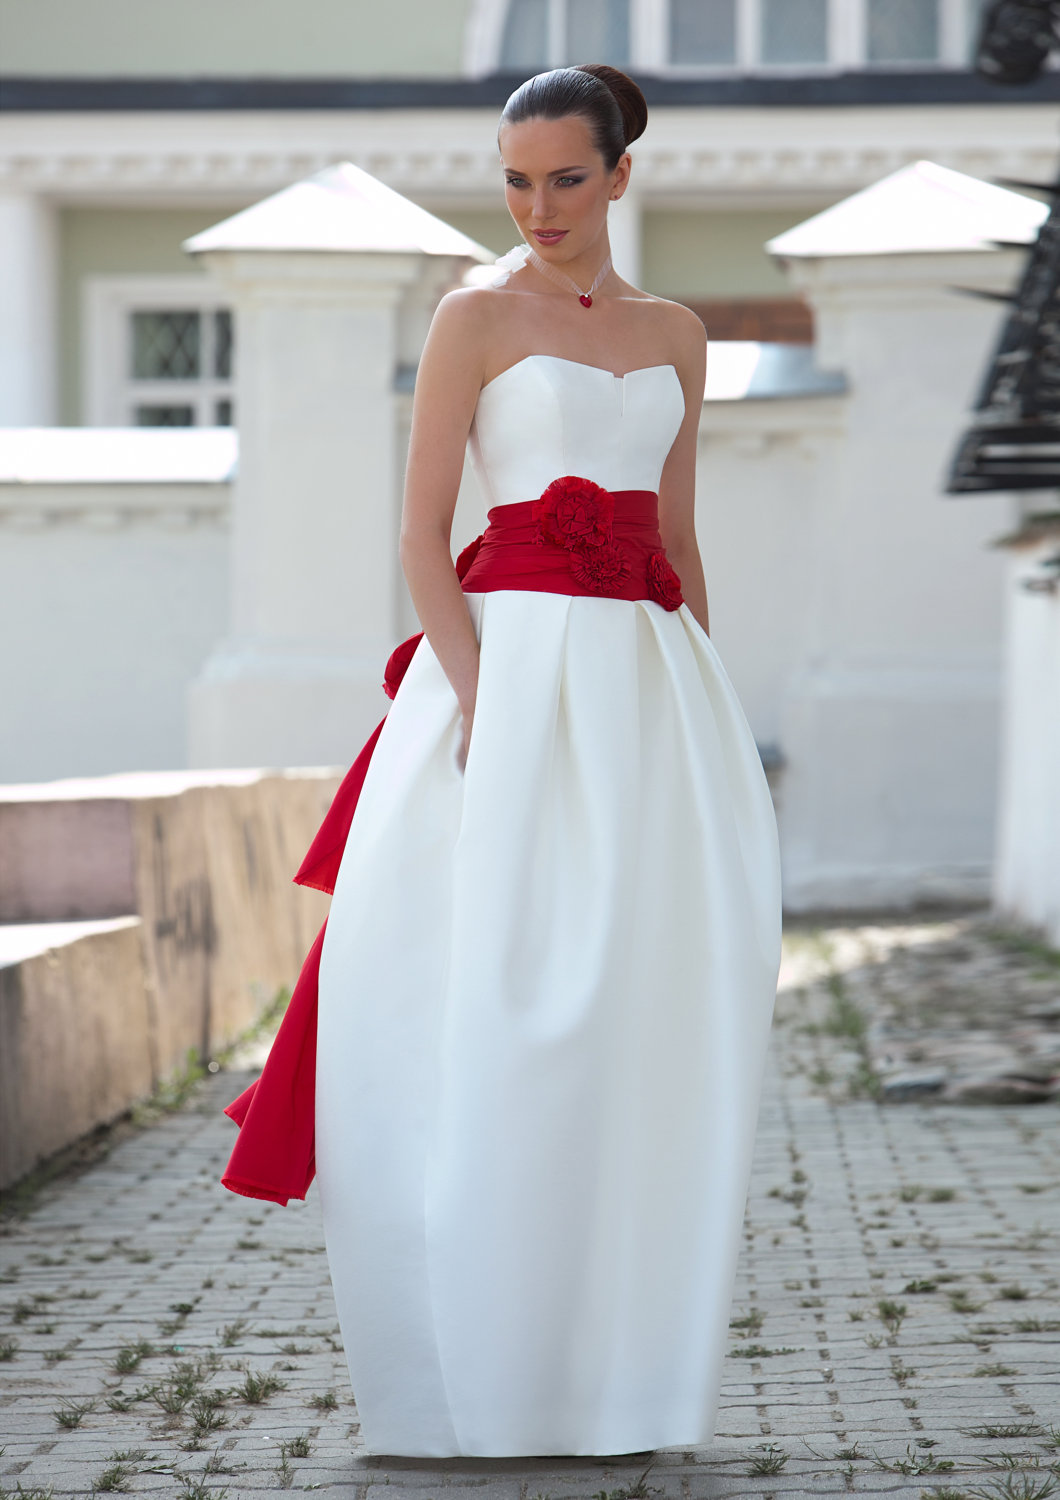 Jackie kennedy inspired wedding dresses for Wedding dress with red sash